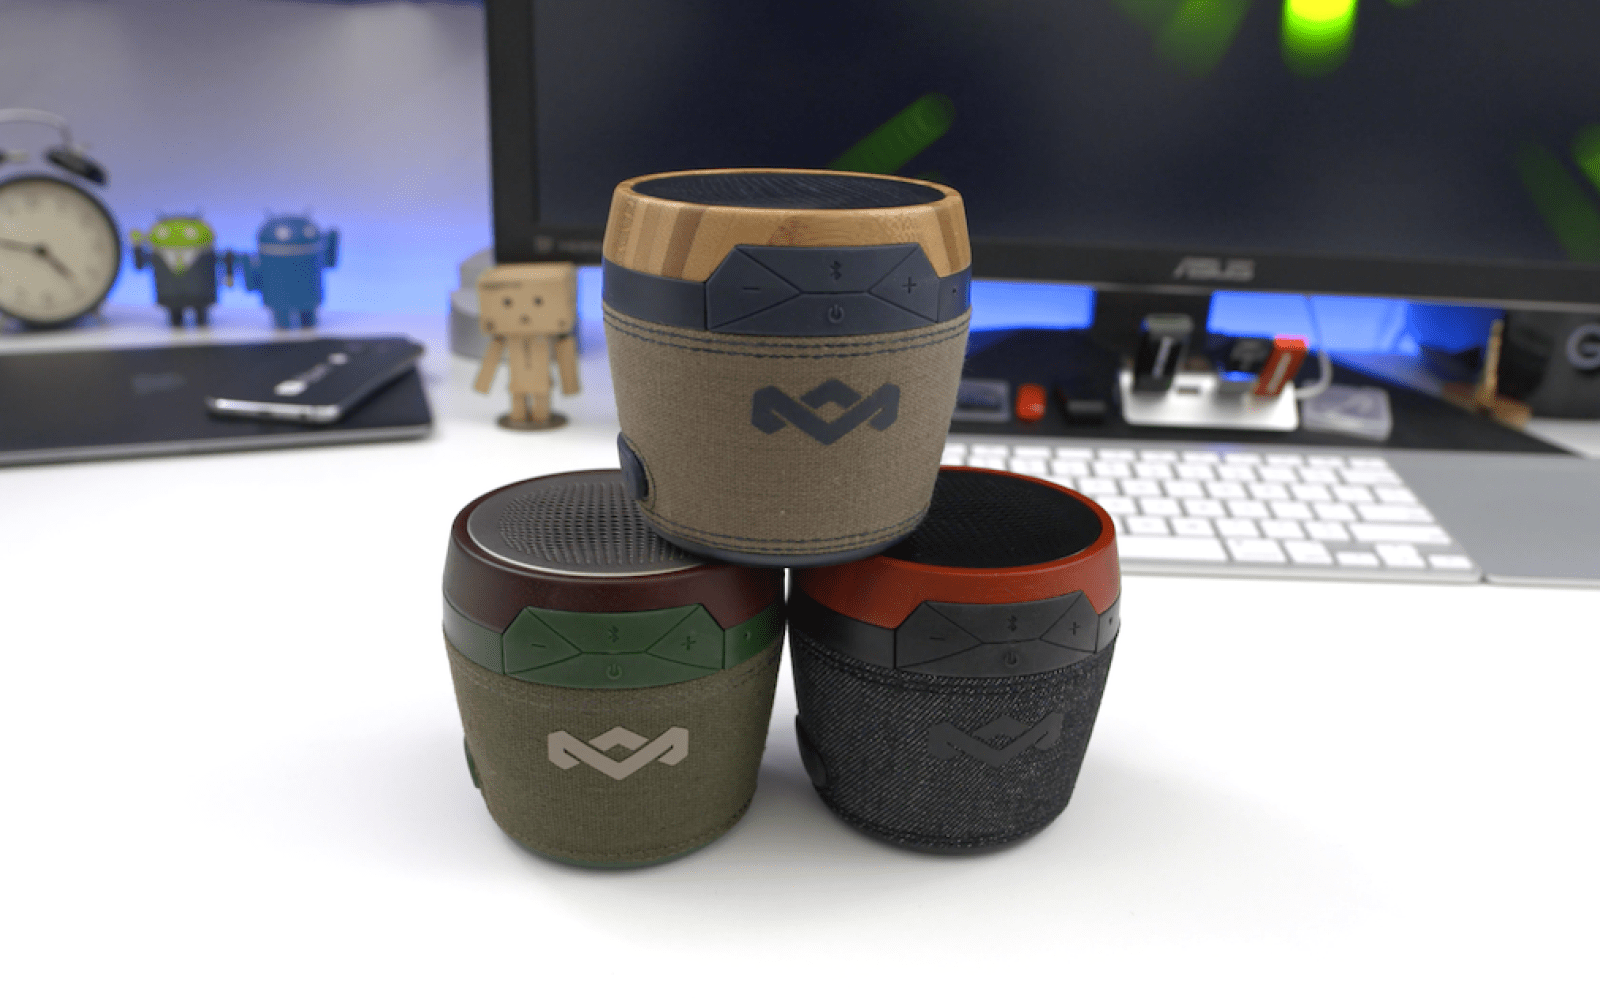 Review: House of Marley's Chant Mini is a solid Bluetooth speaker